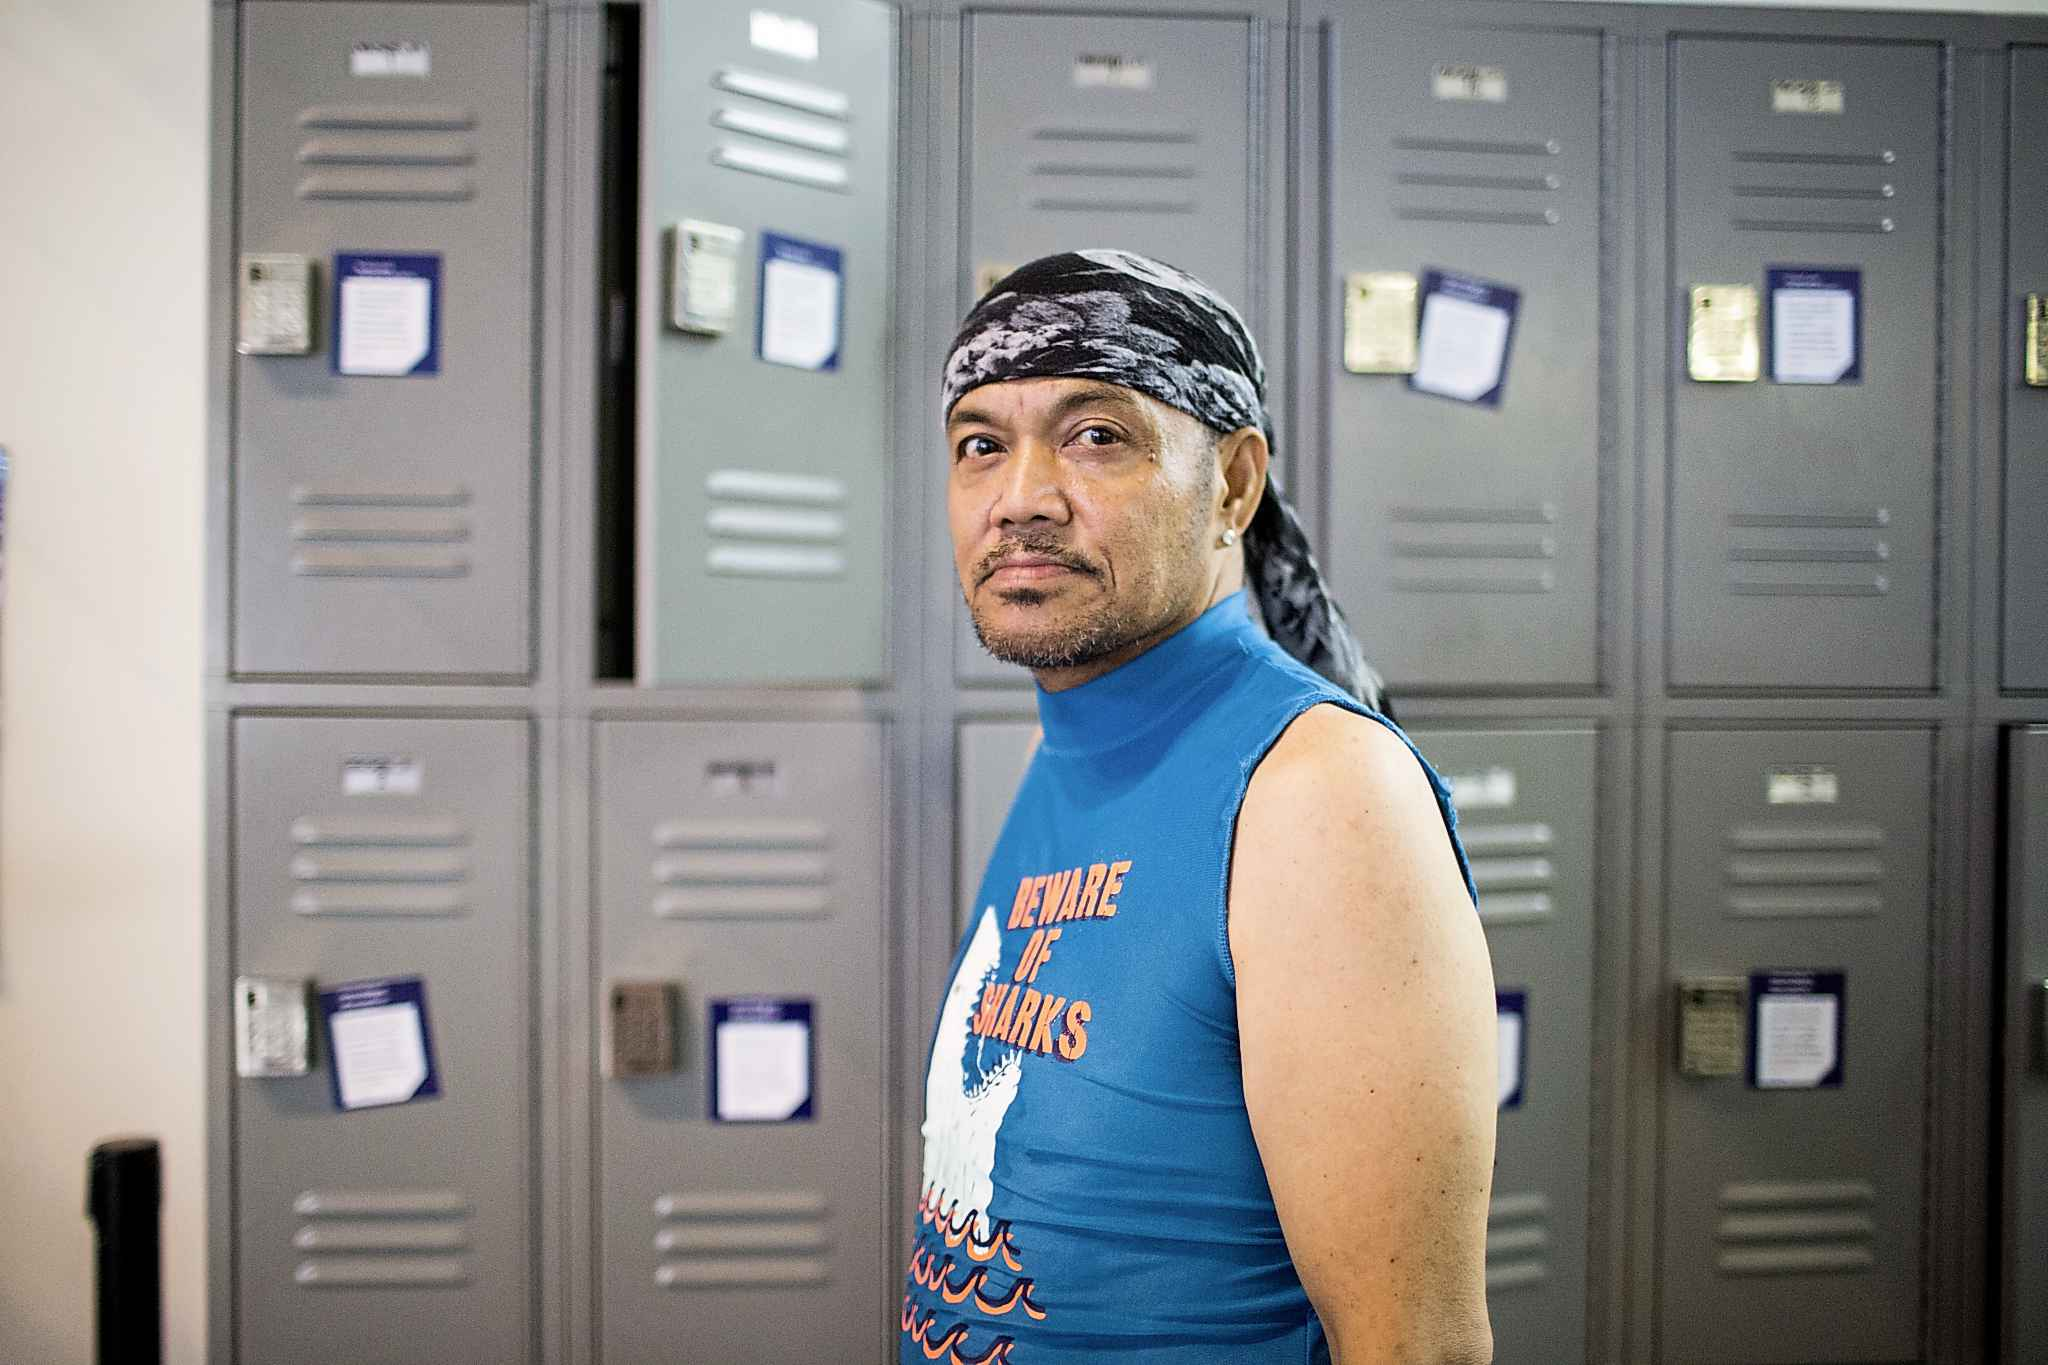 Library patron Rikiboi Sambulad uses the lockers at the Millennium Library.